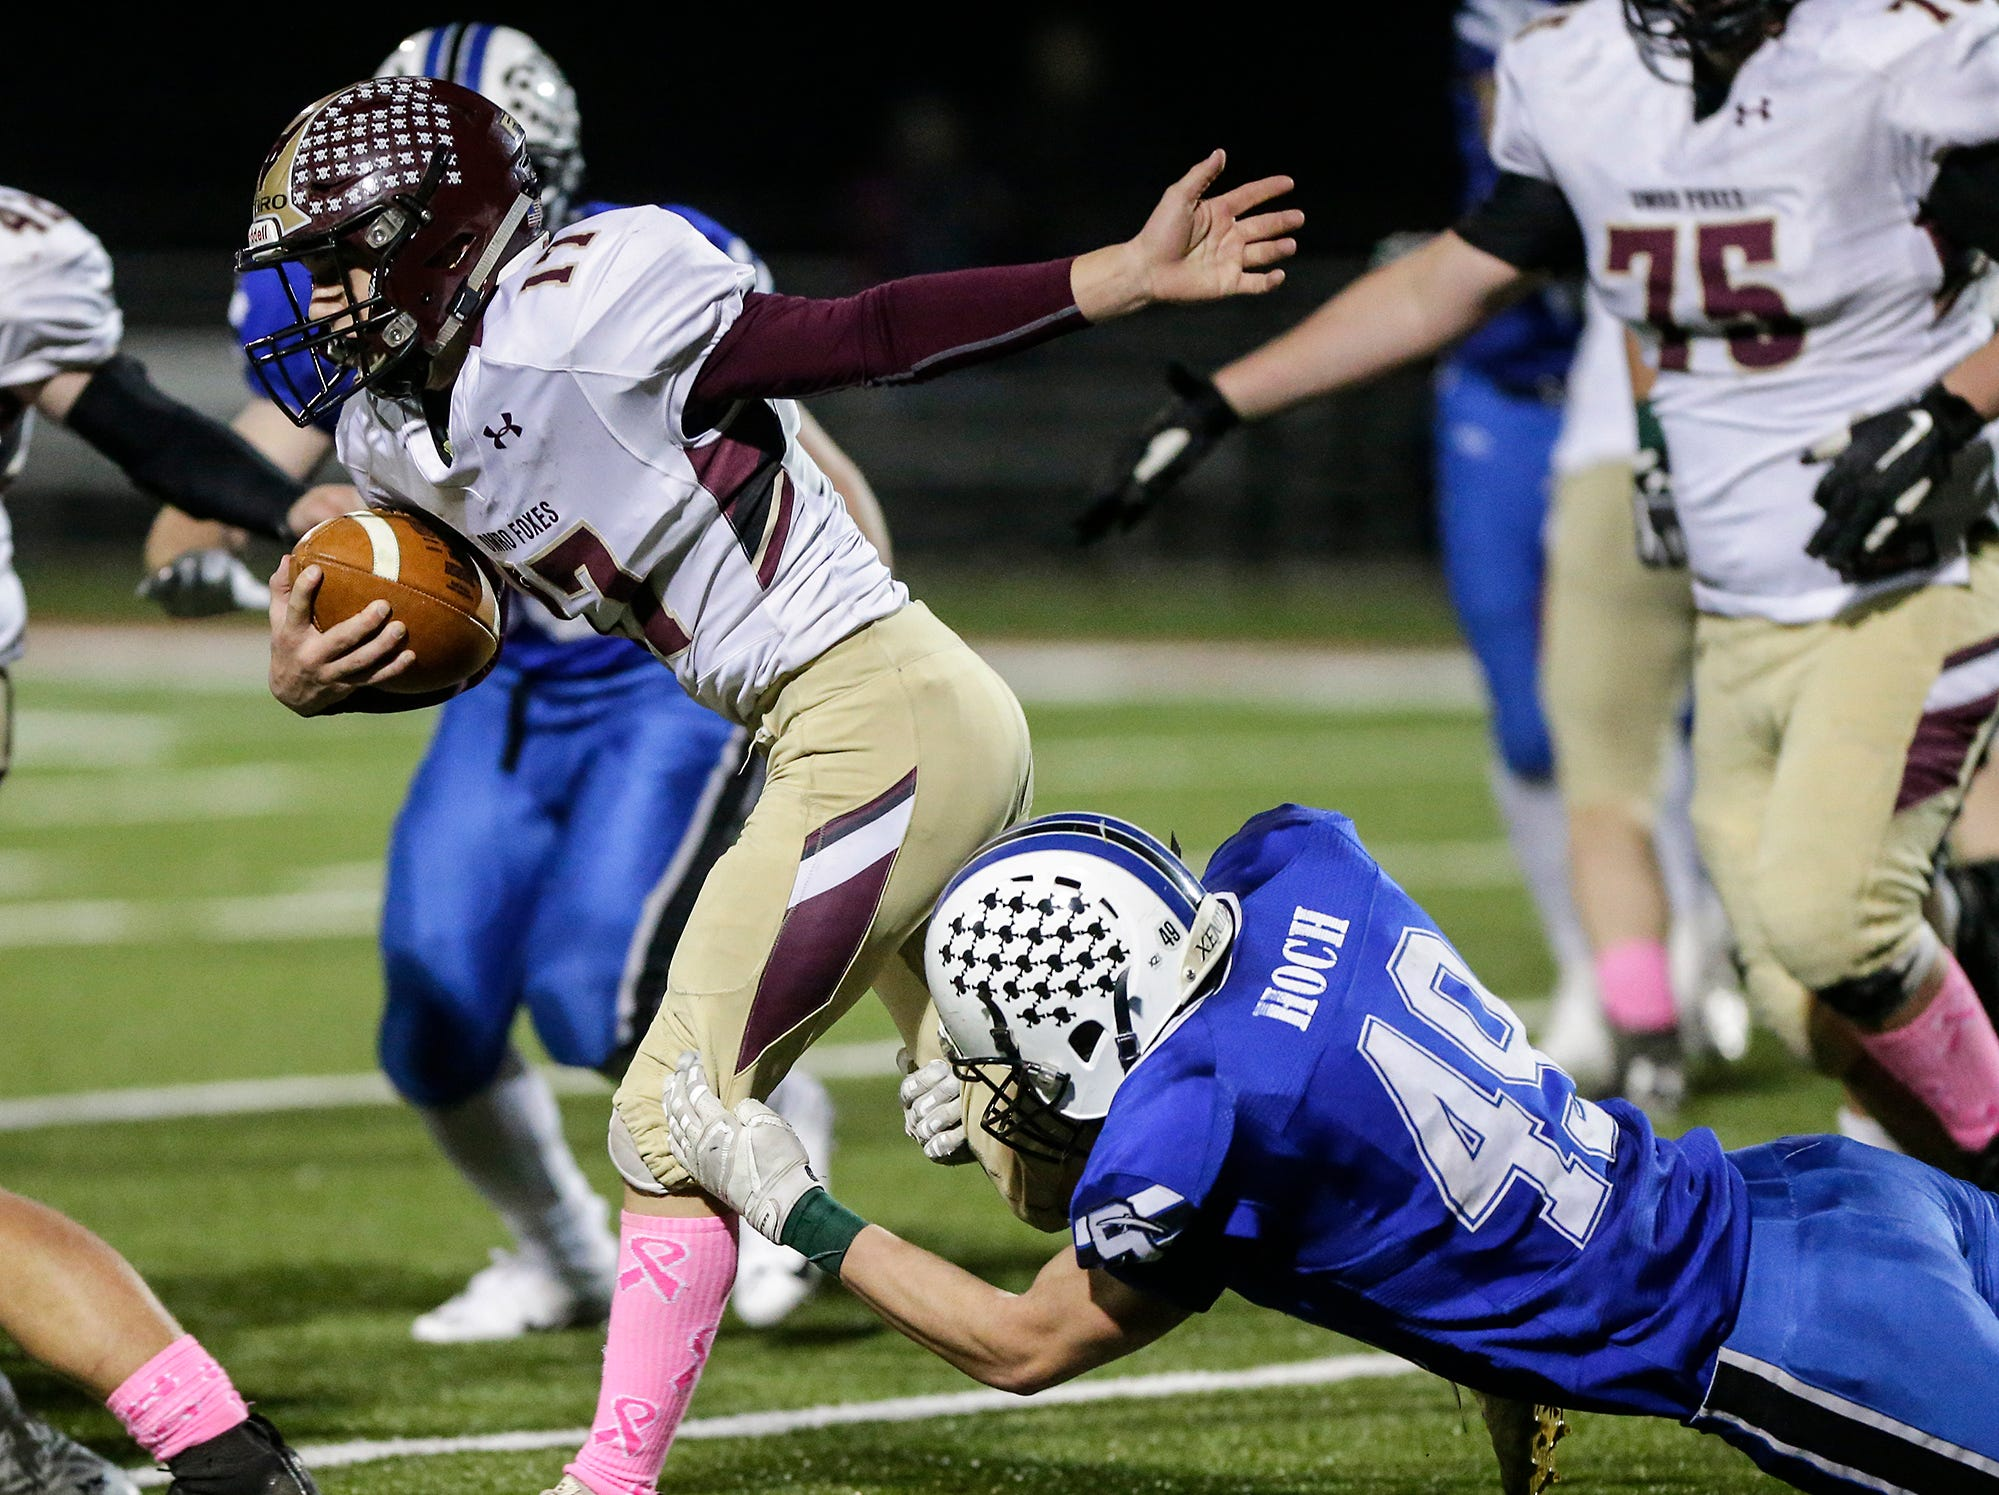 St. Mary's Springs Academy football's Jake Hoch attempts to tackle Omro High School's Ben Wellhoefer Friday, October 26, 2018 during their WIAA division five, level 2 playoff game played in Lomira, Wisconsin. Springs won the match-up 33-20. Doug Raflik/USA TODAY NETWORK-Wisconsin